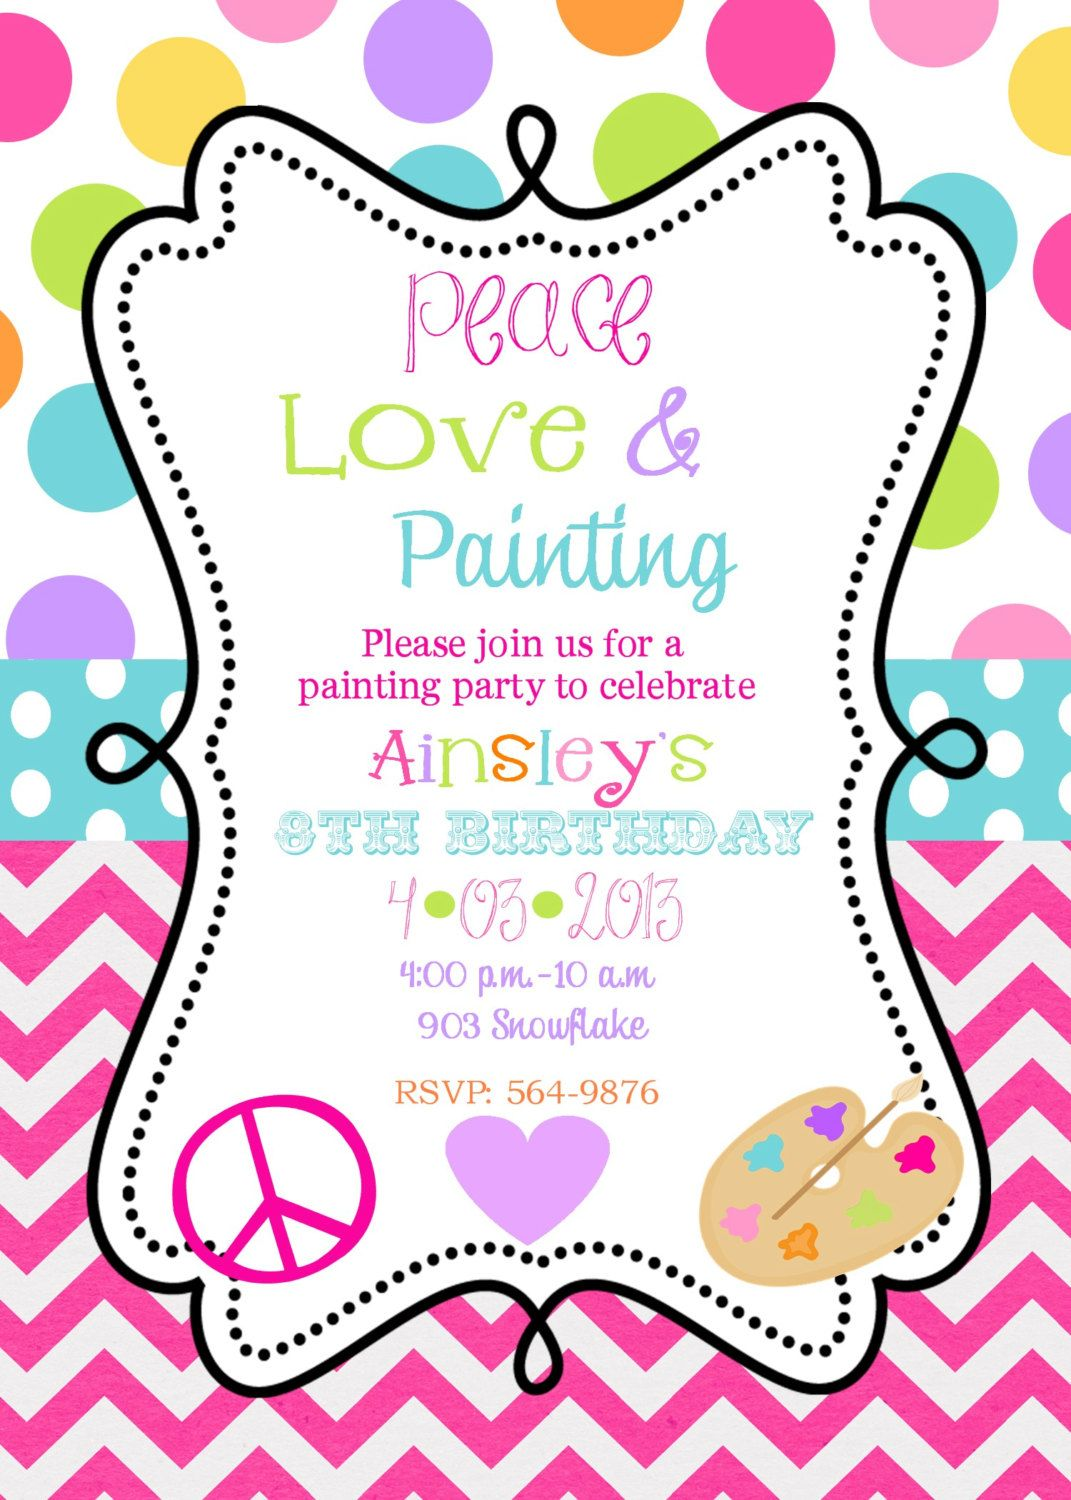 peace love painting birthday party invitations art party peace love painting birthday party invitations art party printable or digital file 10 00